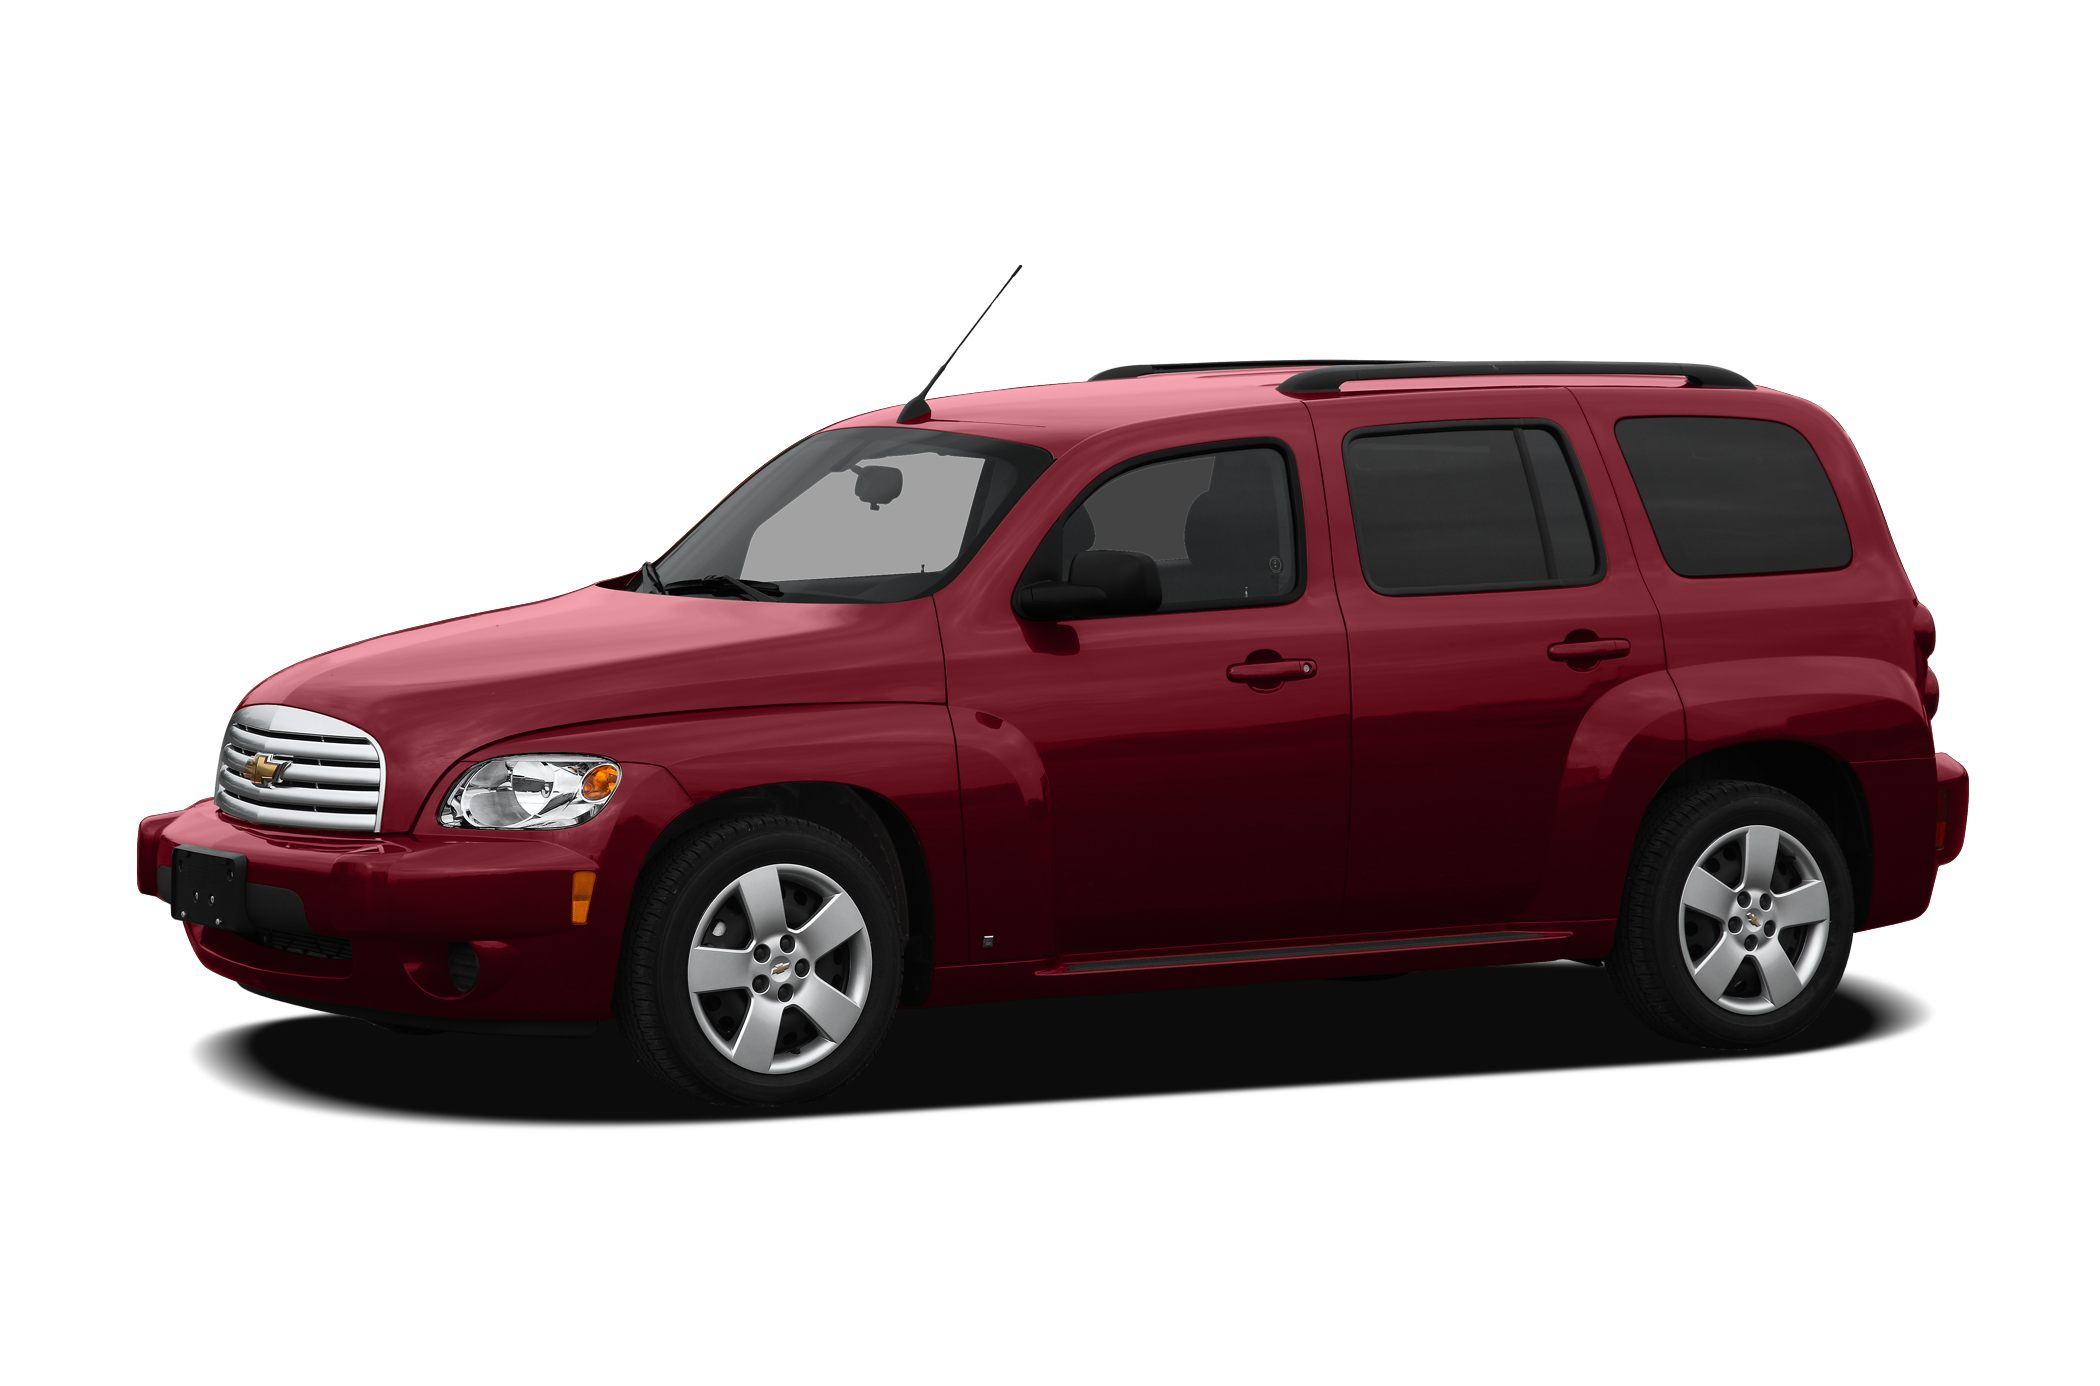 2010 Chevrolet HHR LT Wagon for sale in Mobile for $9,800 with 86,757 miles